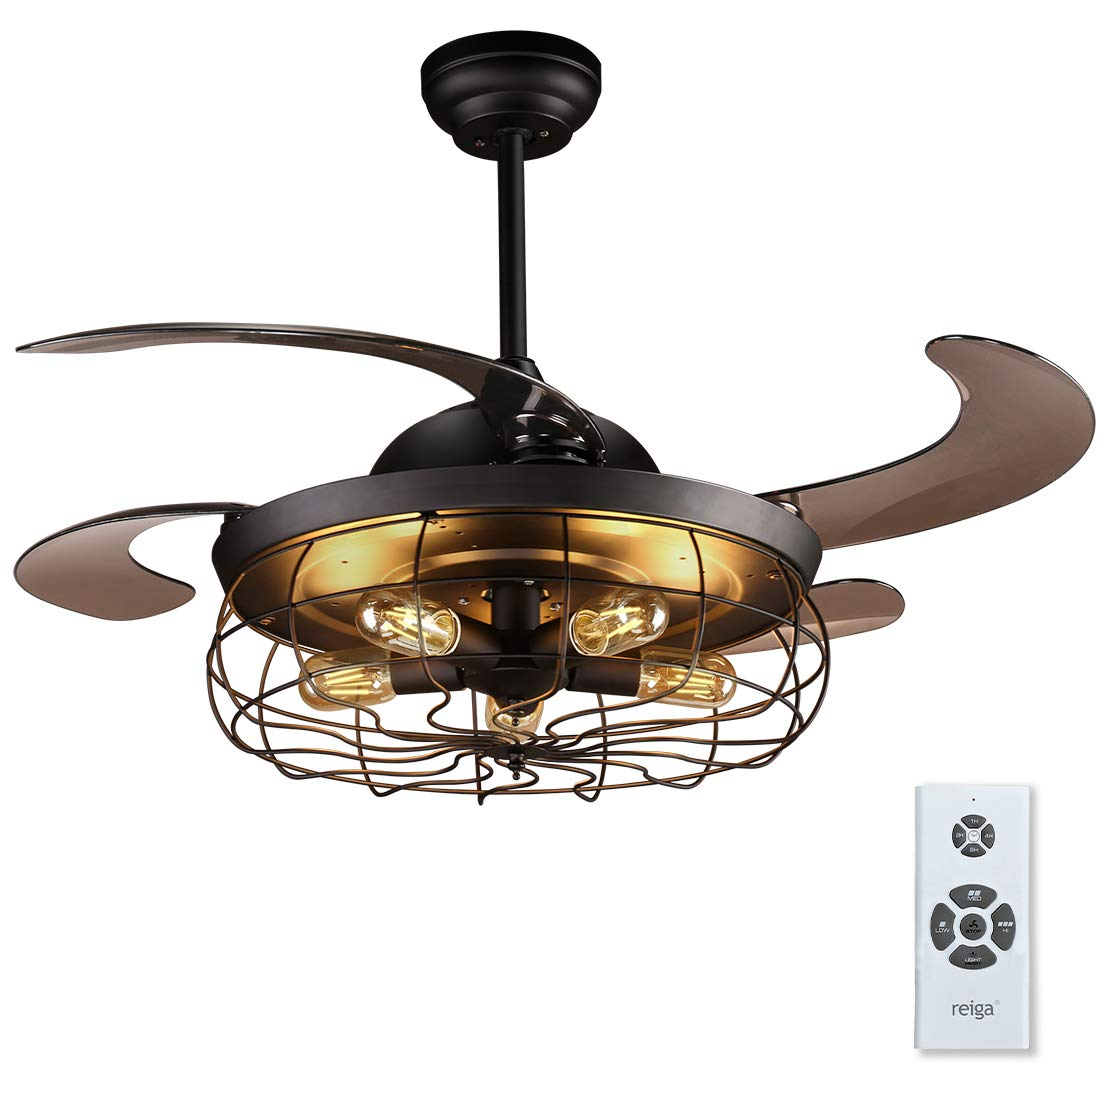 reiga 44 inch Black Retractable Blade Caged Ceiling Fan with Light Kit and Remote Control, Noiseless Motor Black